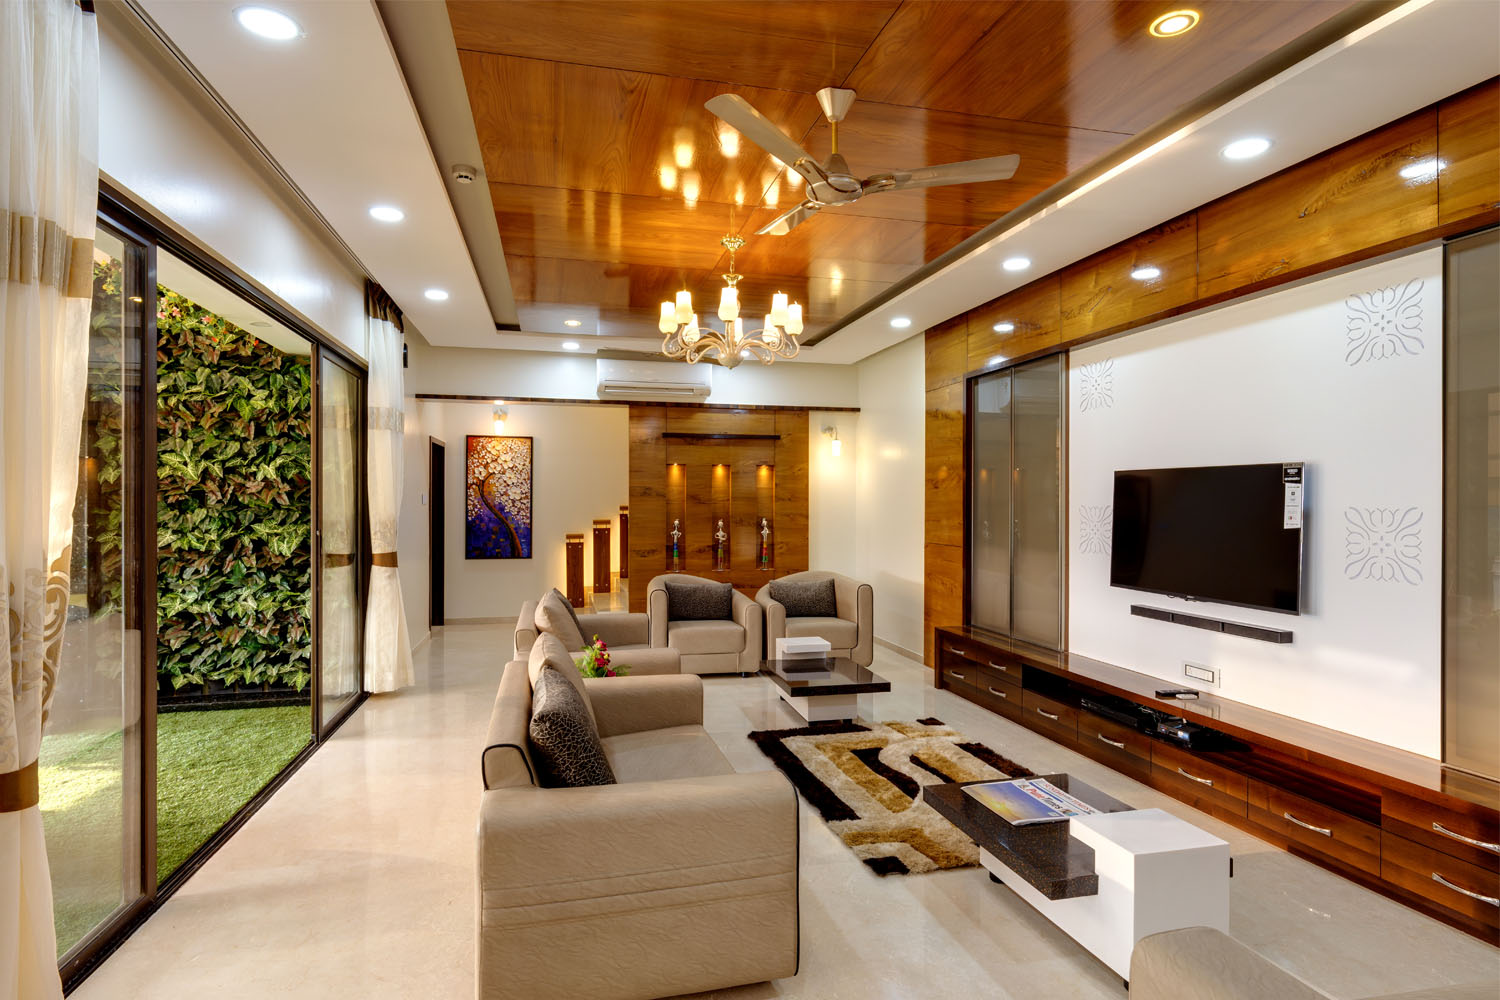 Best interior designer pune nerlekar interior designing for Indian interior design